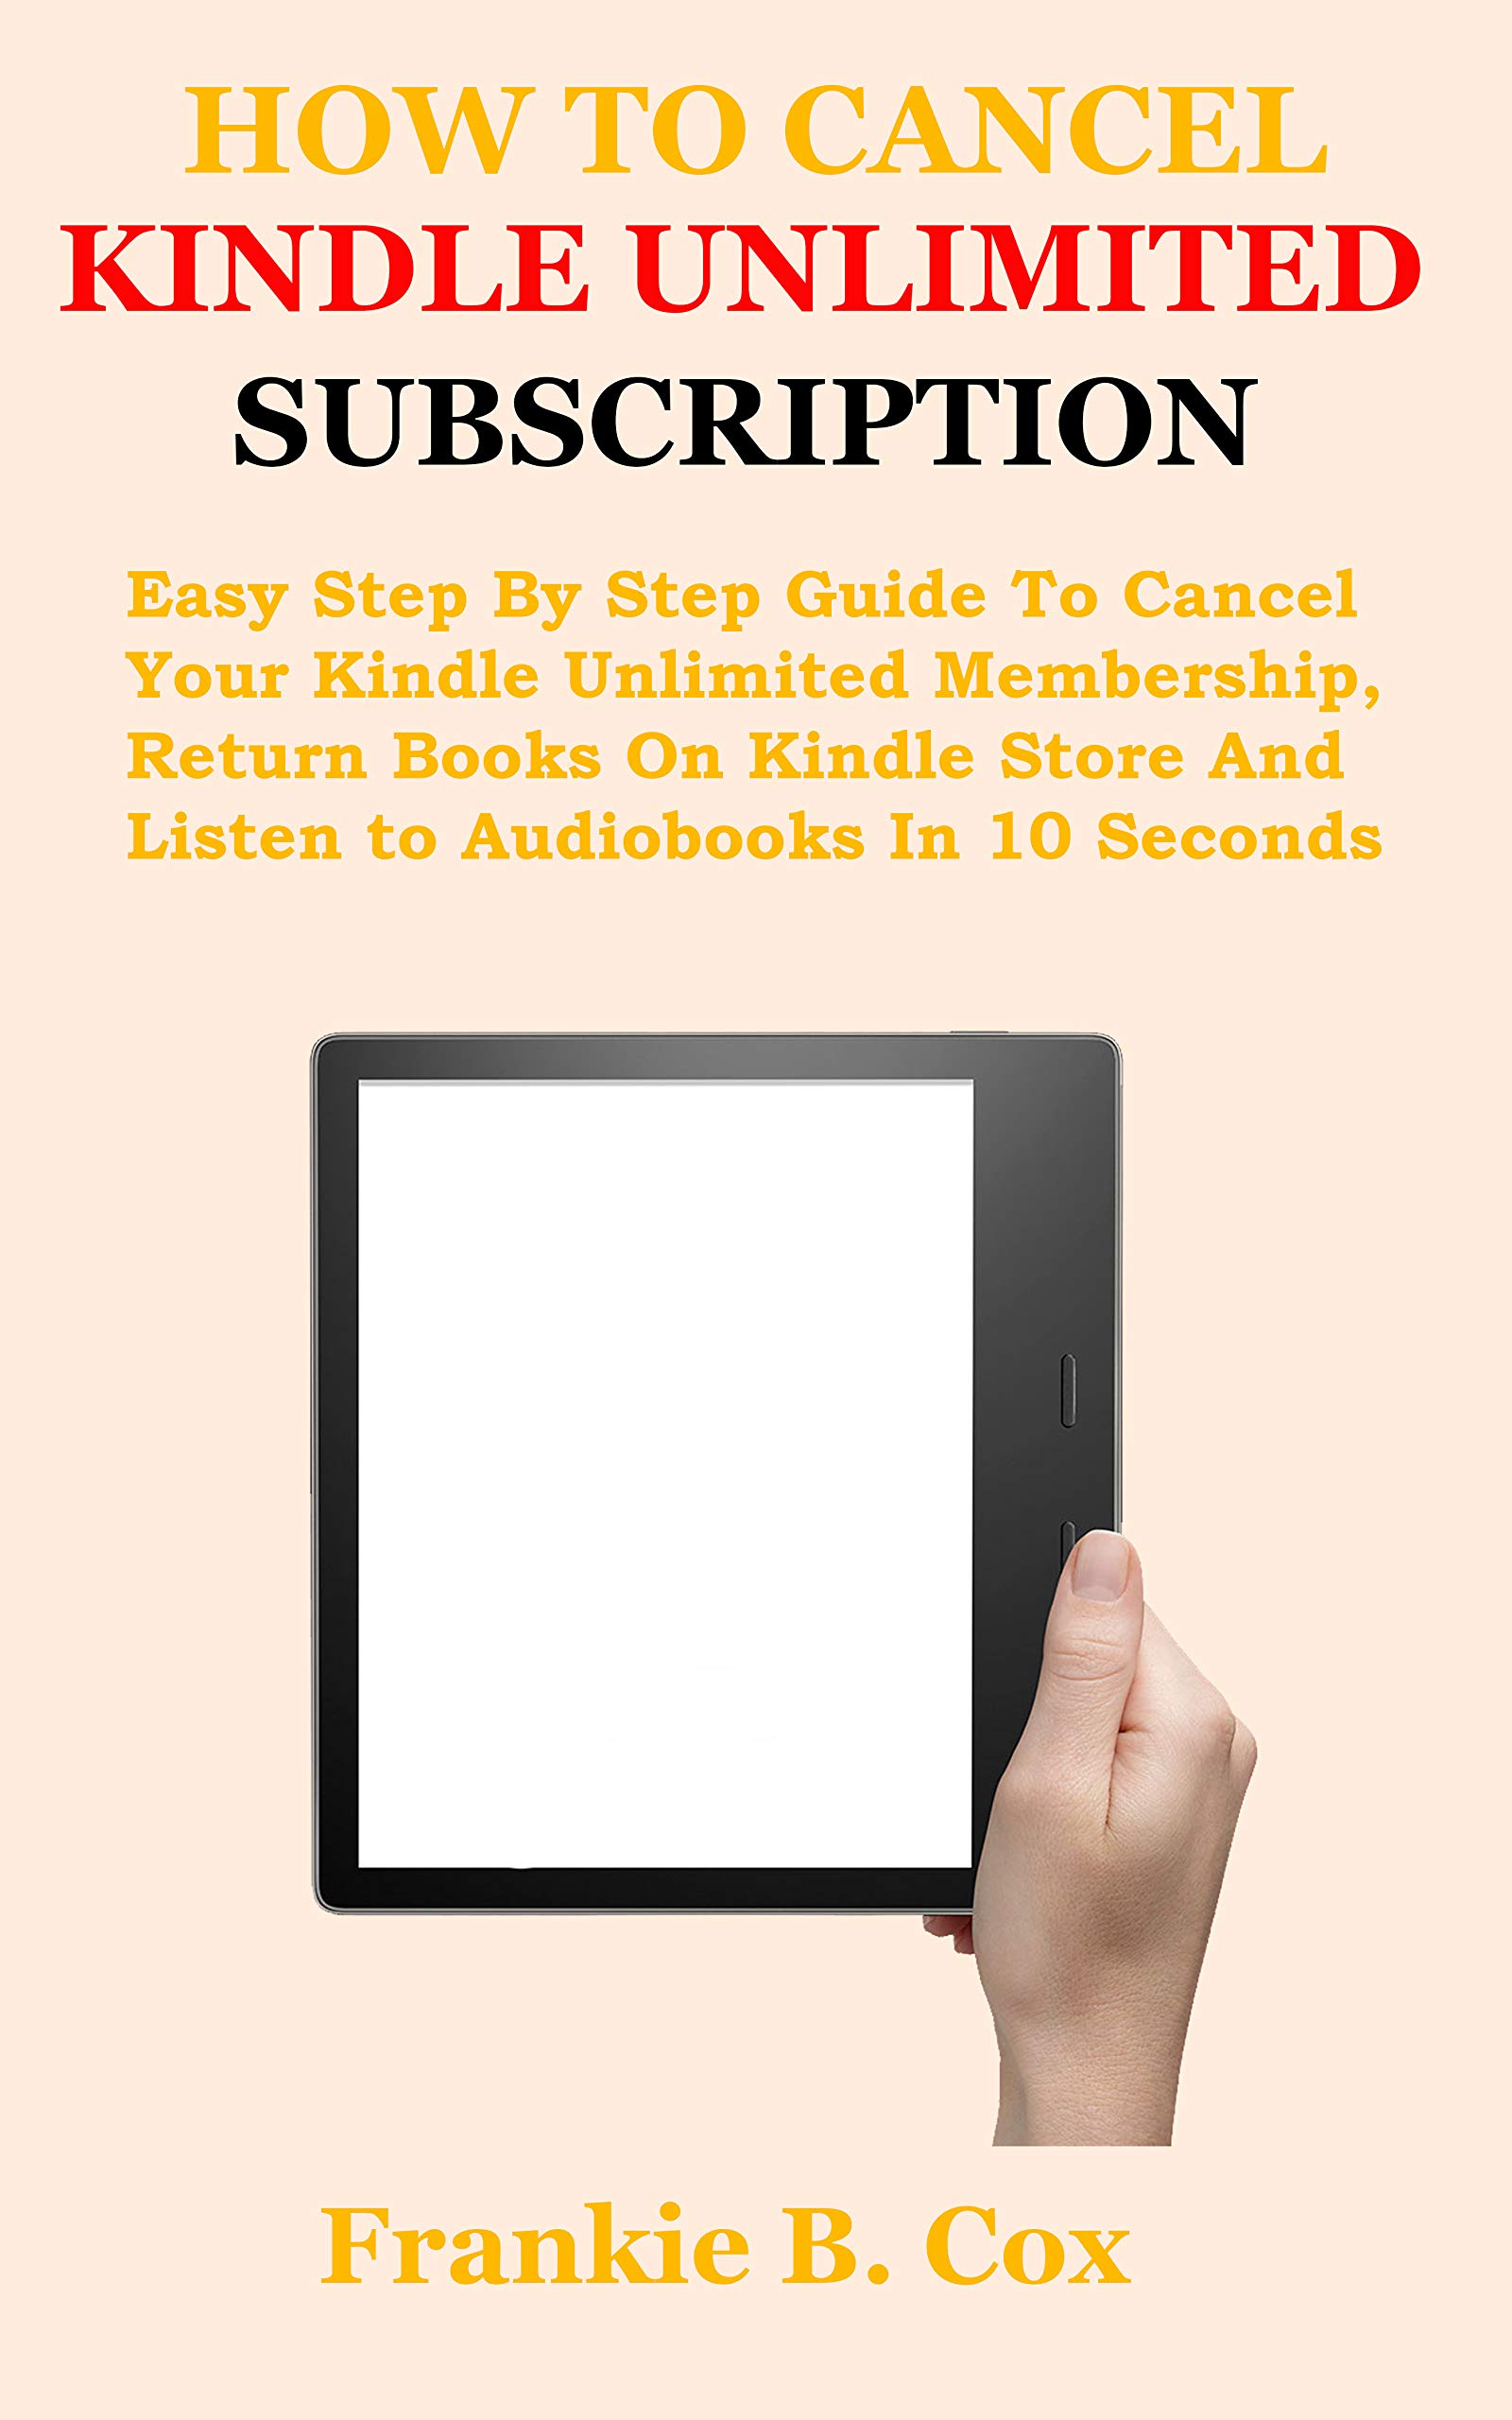 HOW TO CANCEL KINDLE UNLIMITED SUBSCRIPTION: Easy Step By Step Guide To Cancel Your Kindle Unlimited Membership, Return Books On Kindle Store And Listen to Audiobooks In 10 Seconds